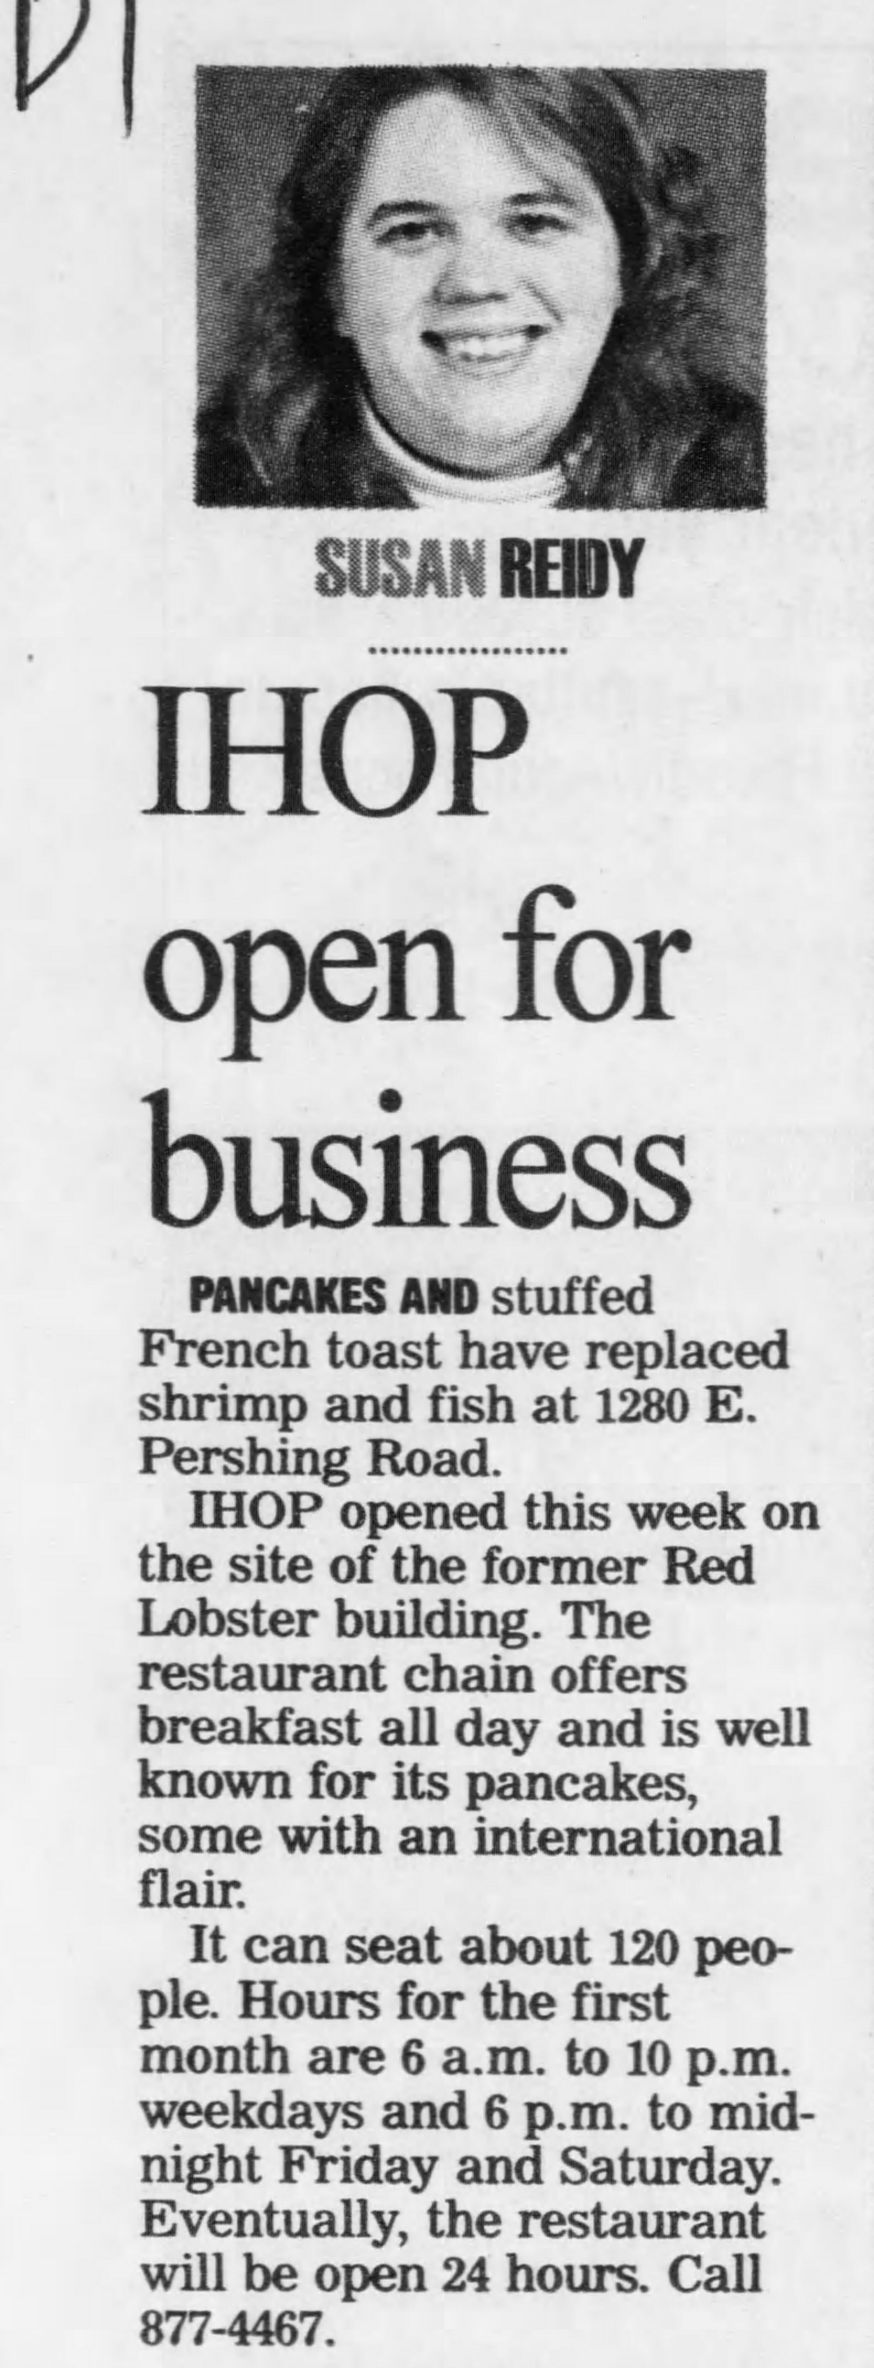 IHOP in Decatur closes after 15 years | Local | herald-review.com